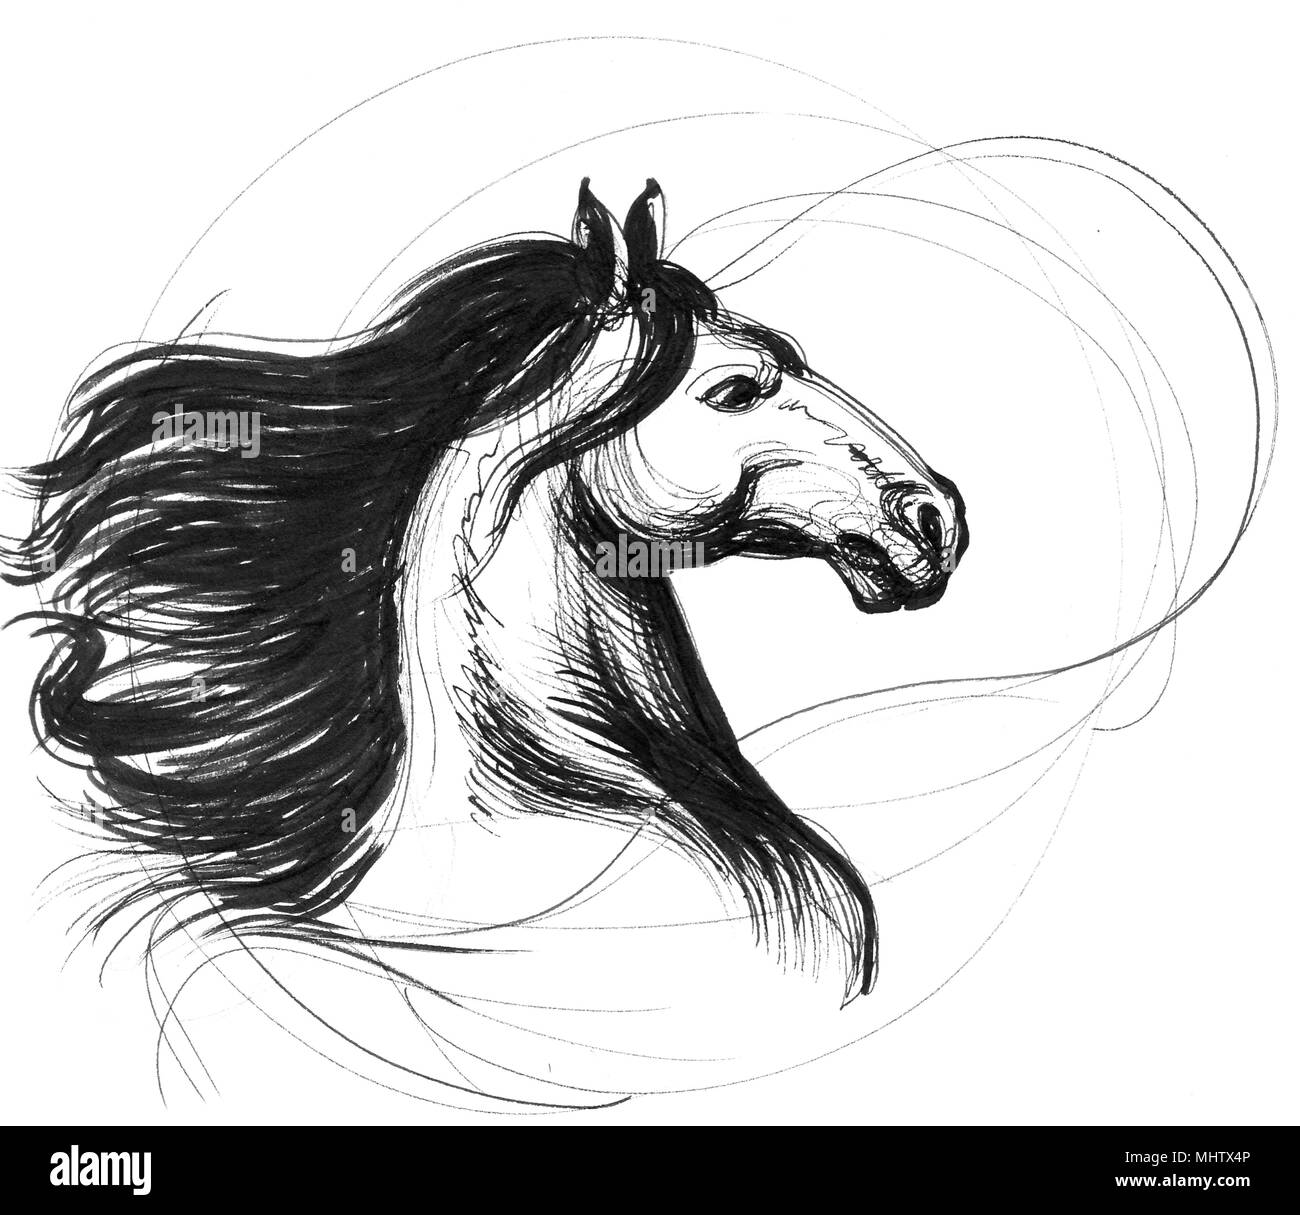 Ink Black And White Line Drawing Of A Horse Head Stock Photo Alamy